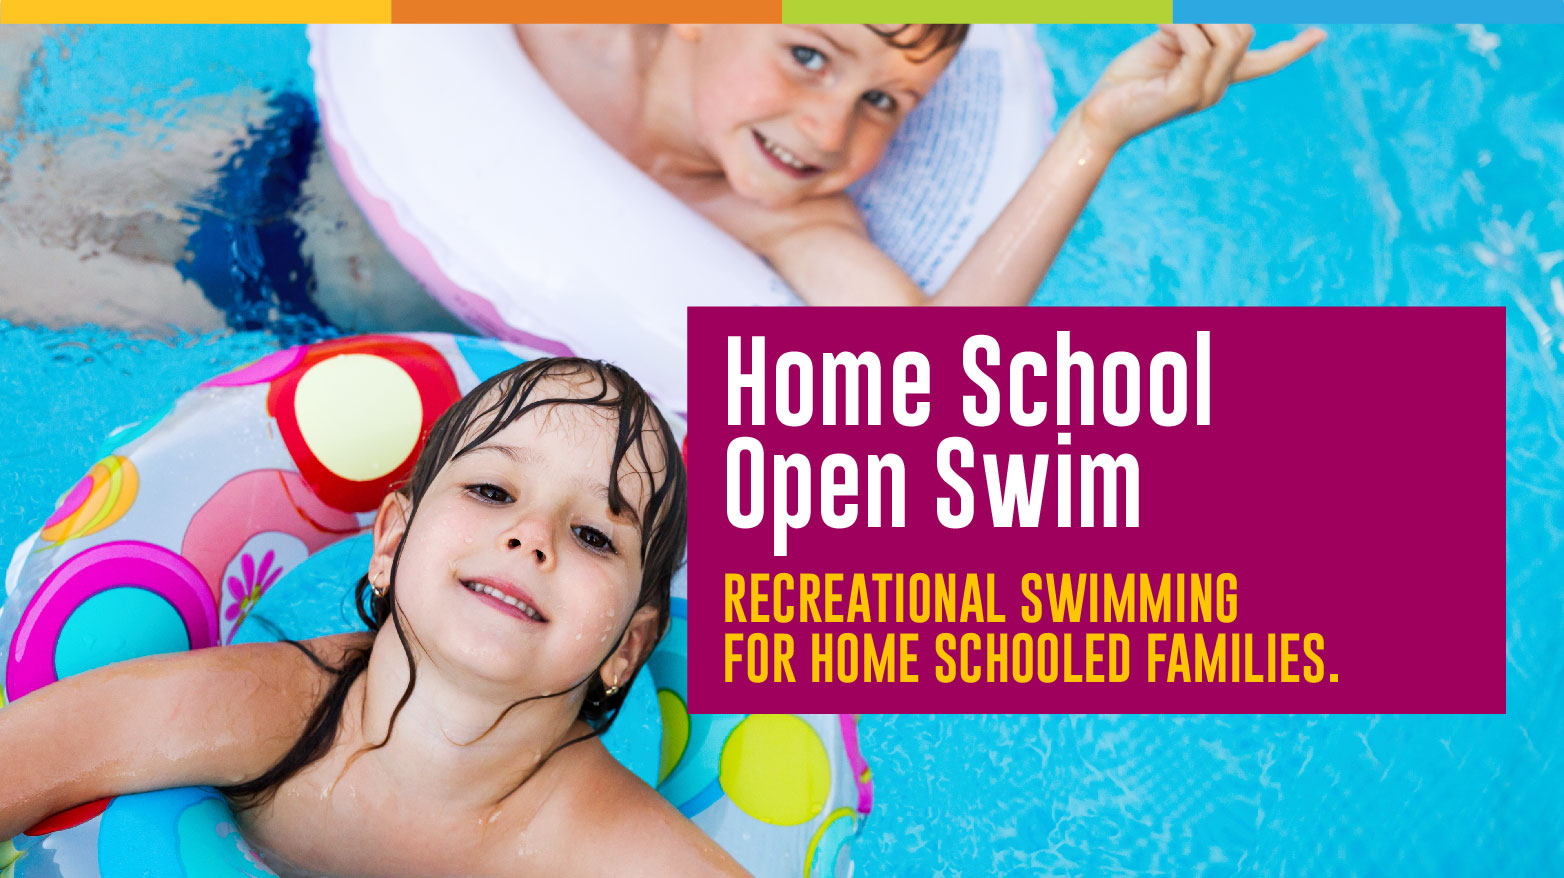 Home School Open Swim